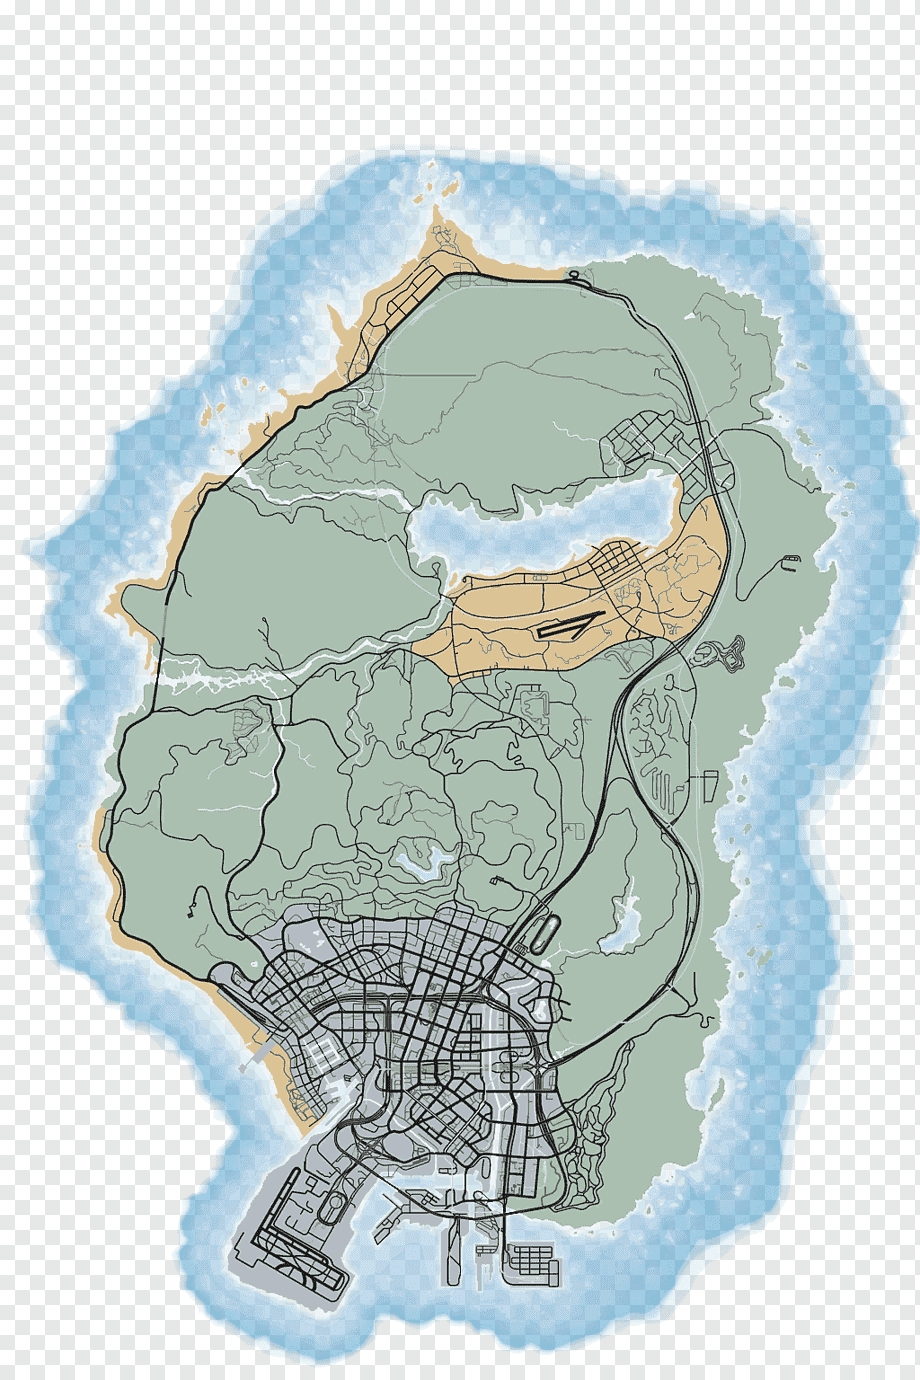 Gta San Andreas Tags Map : andreas, Grand, Theft, Auto:, Andreas, Online, Multiplayer,, Game,, Video, World, PNGWing